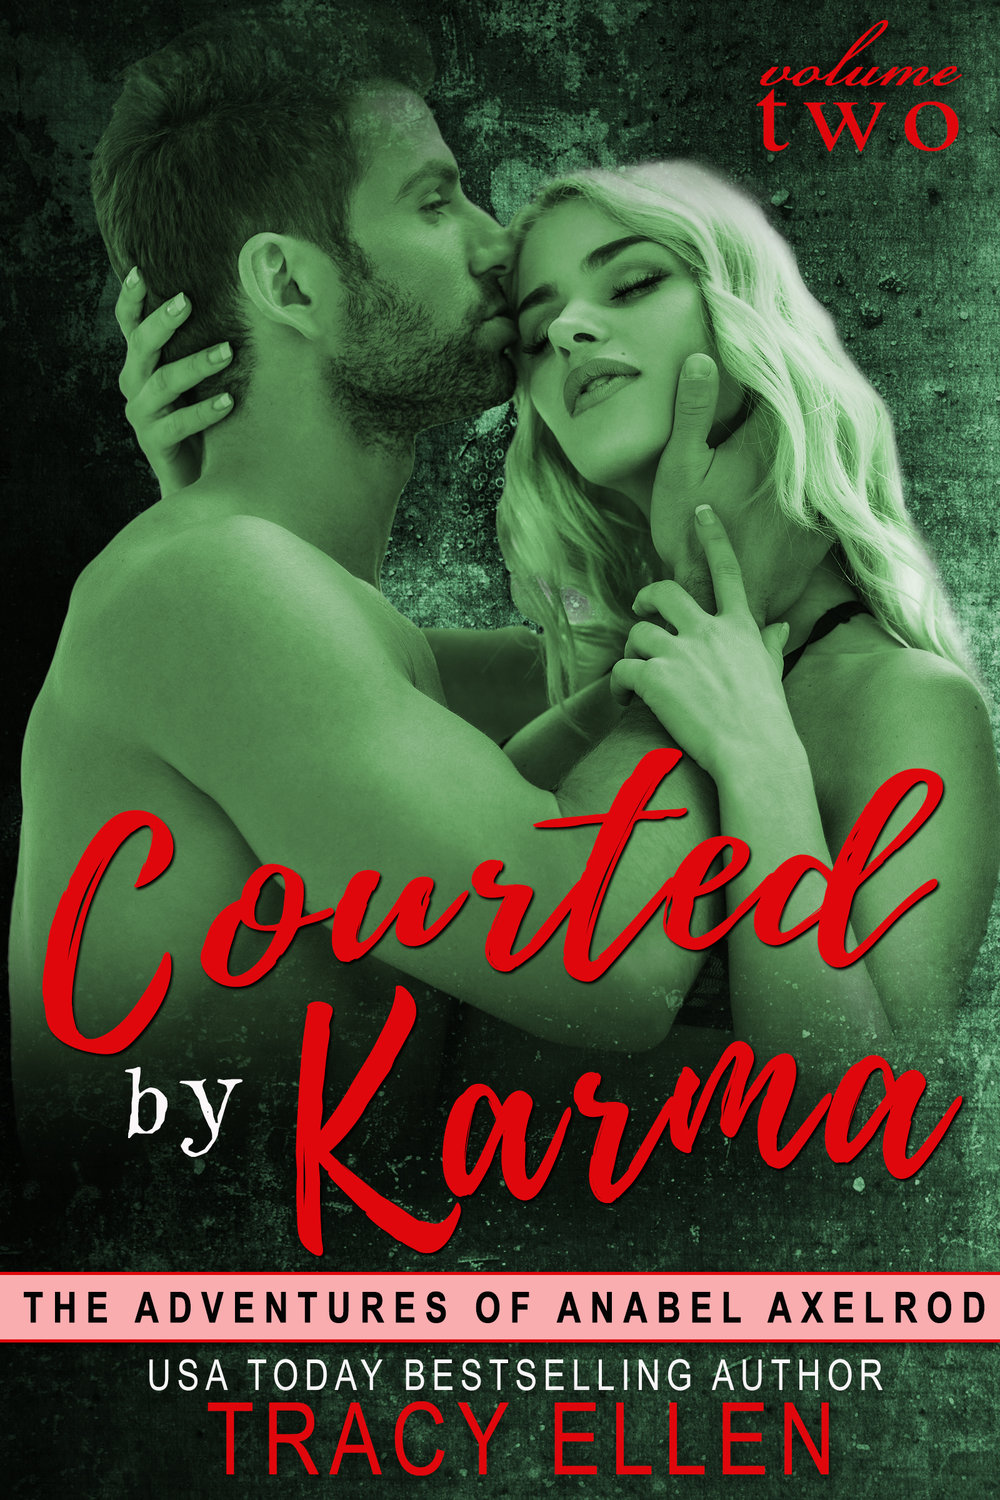 Courted by Karma